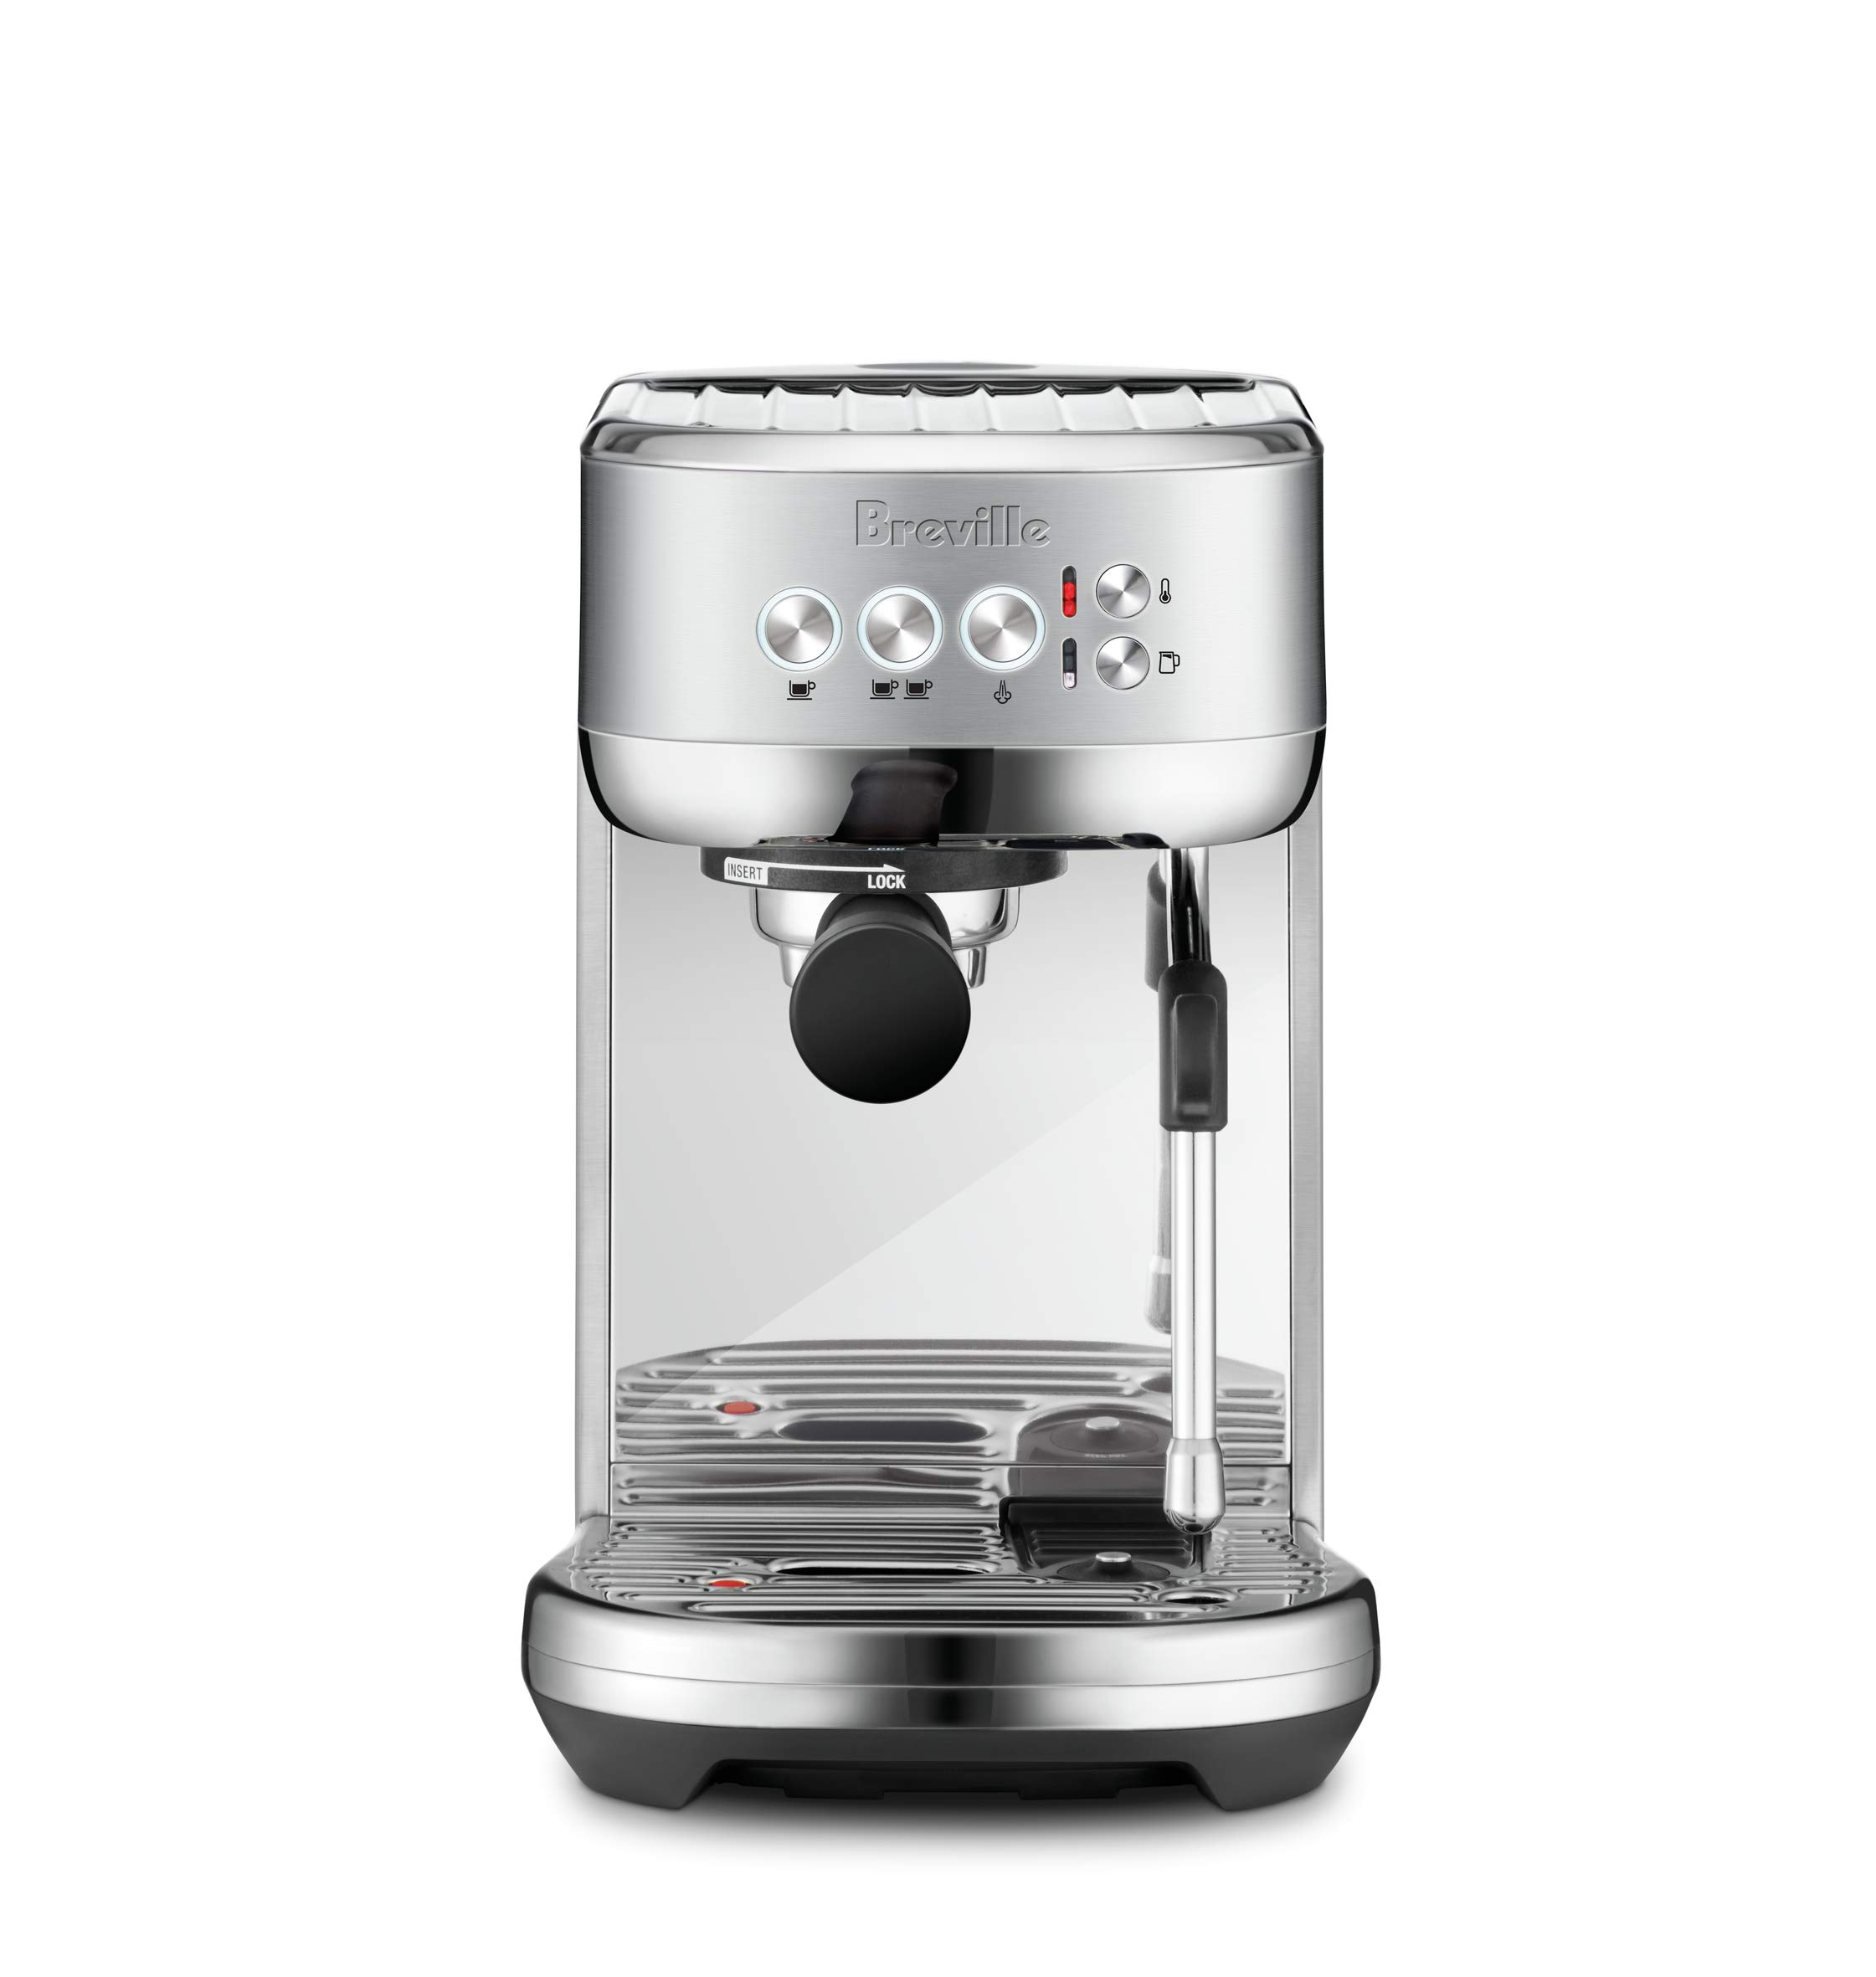 Breville BES500BSS Bambino Plus Espresso Machine, Brushed Stainless Steel by Breville